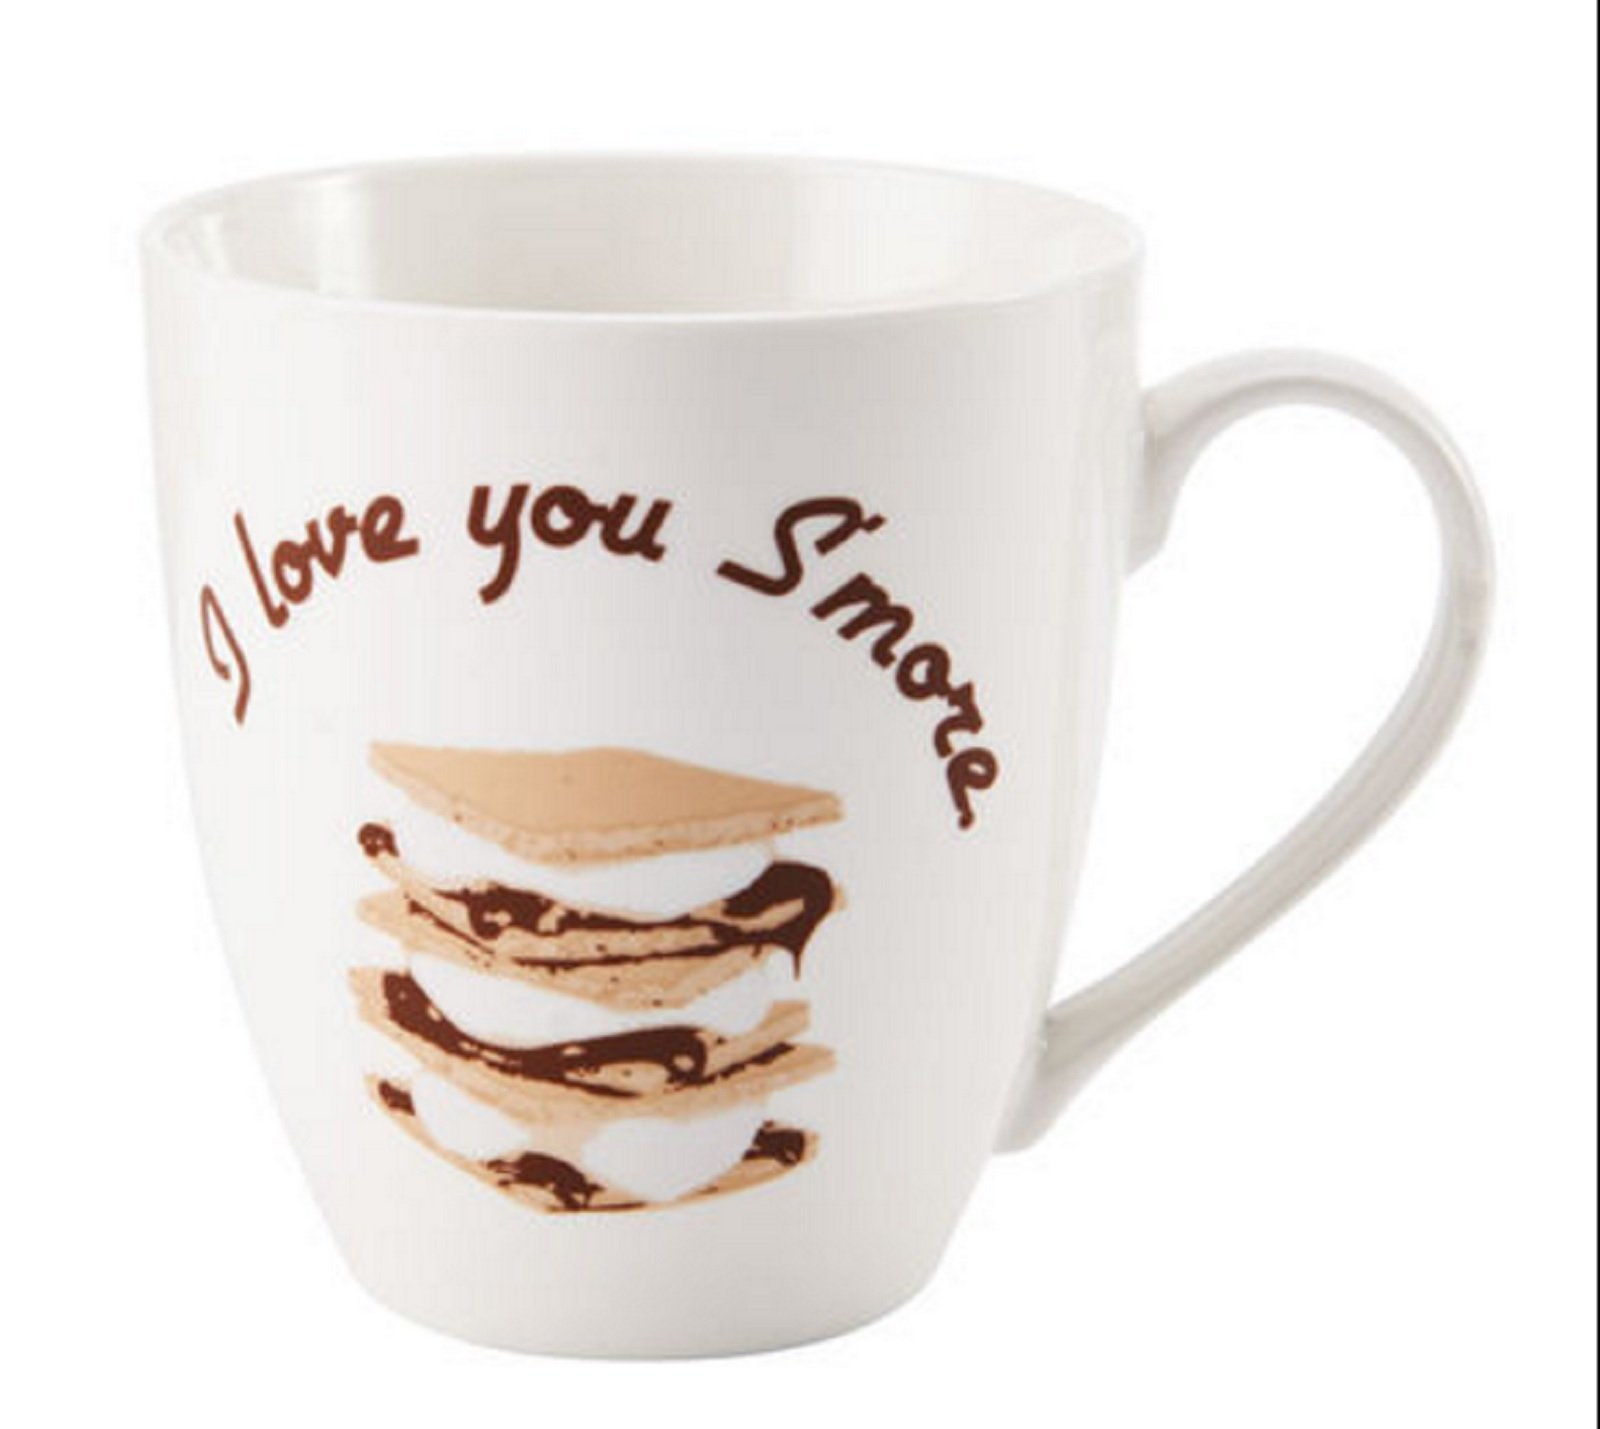 Pfaltzgraff Everyday I Love You Smore Large 18 Ounce Coffee Mug - White